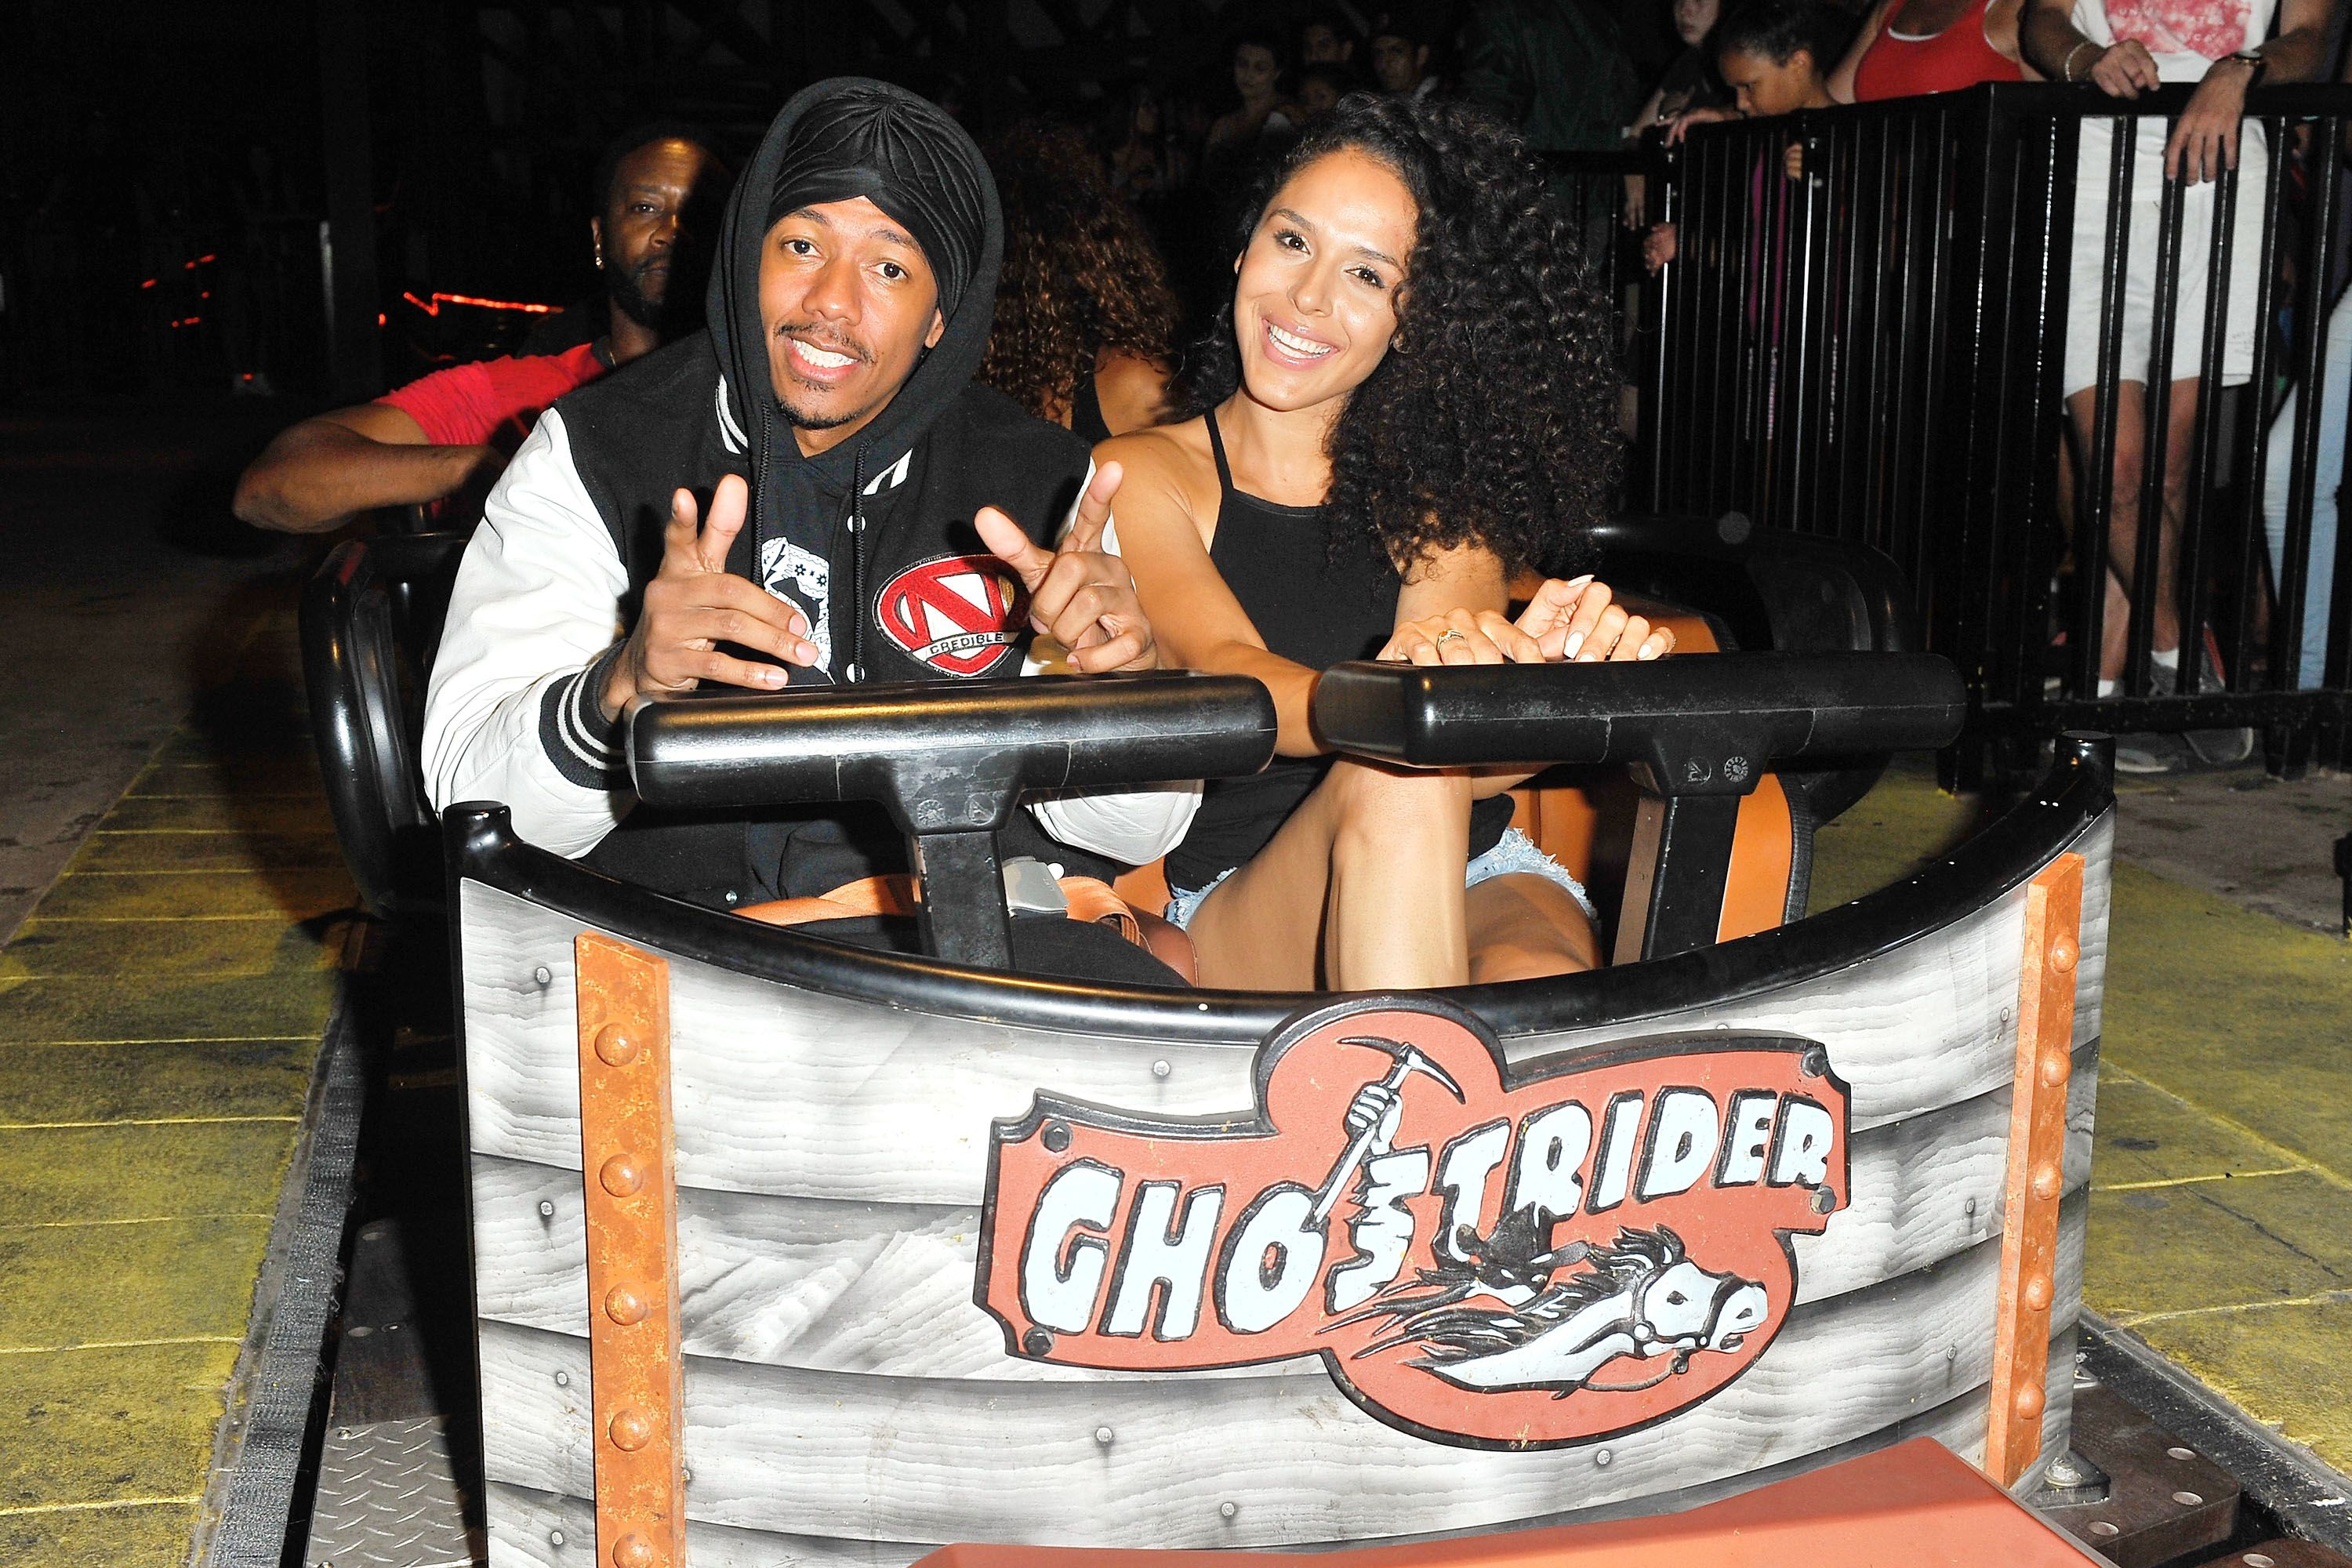 """Nick Cannon and Brittany Bell at the """"Ghostrider"""" Roller Coaster at Knott's Berry Farm on September 1, 2017 in Buena Park, California. 